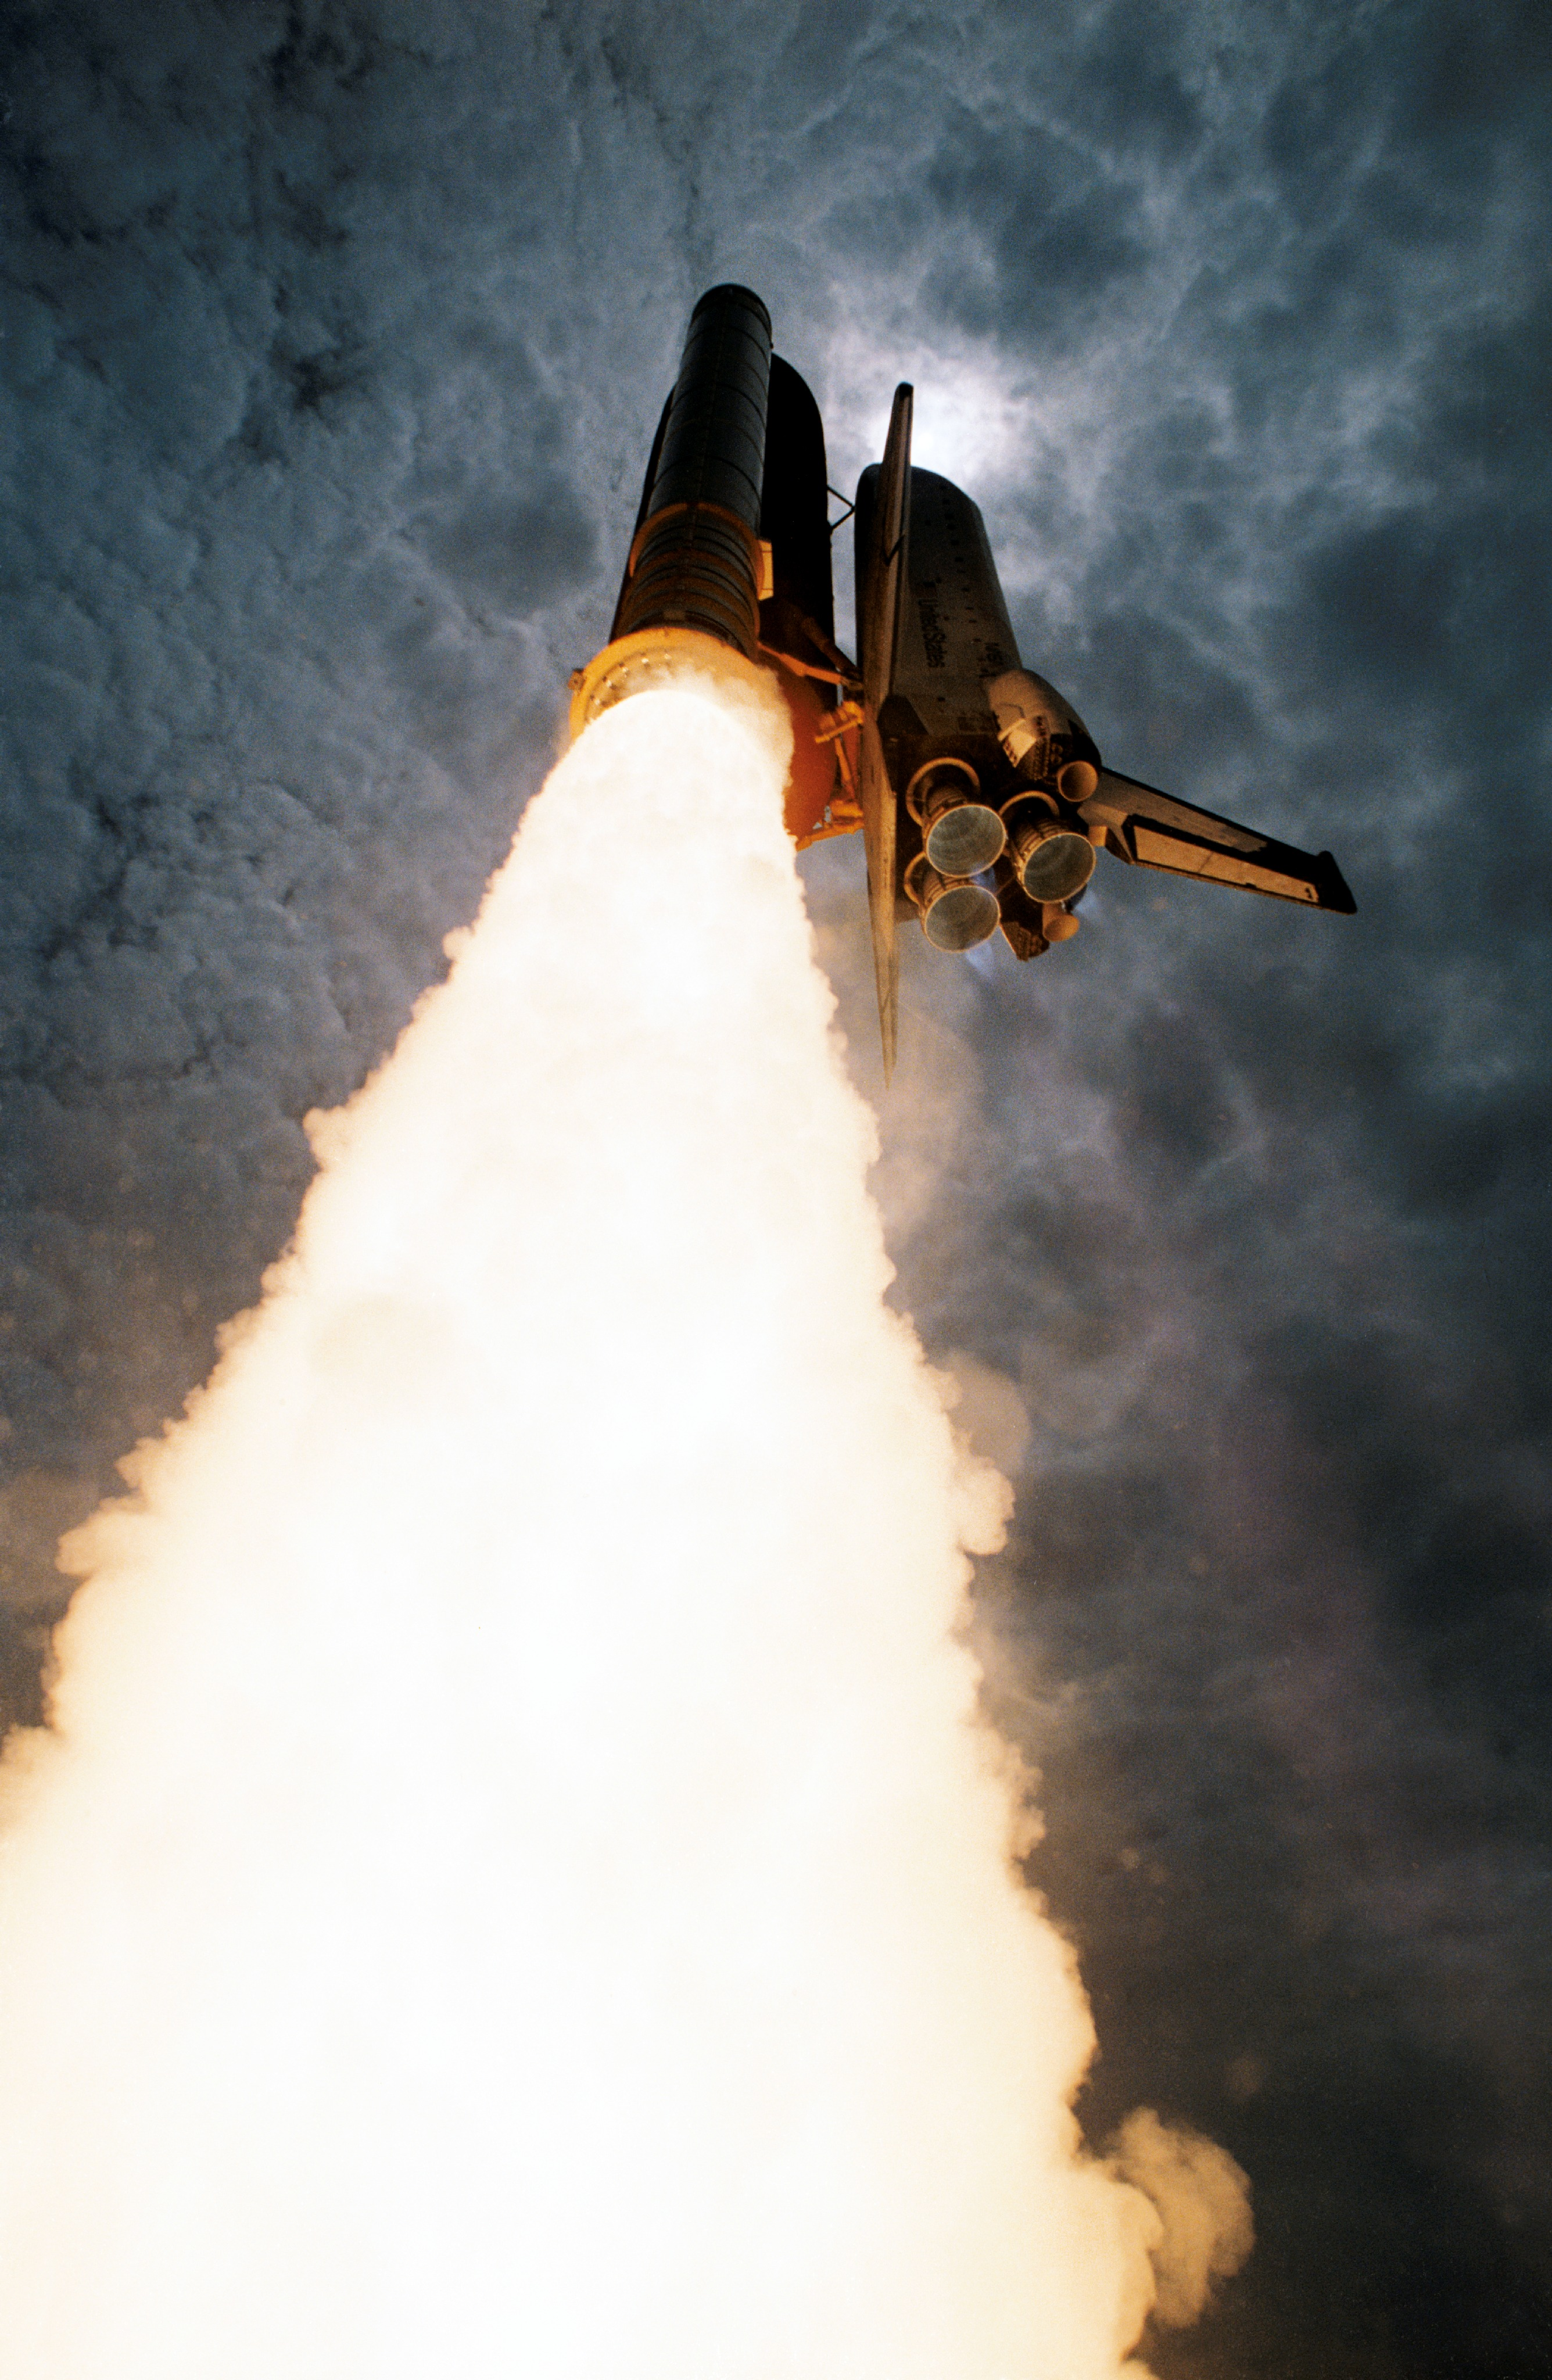 Shuttle Launching Upward To Space Captured From Angle On Ground